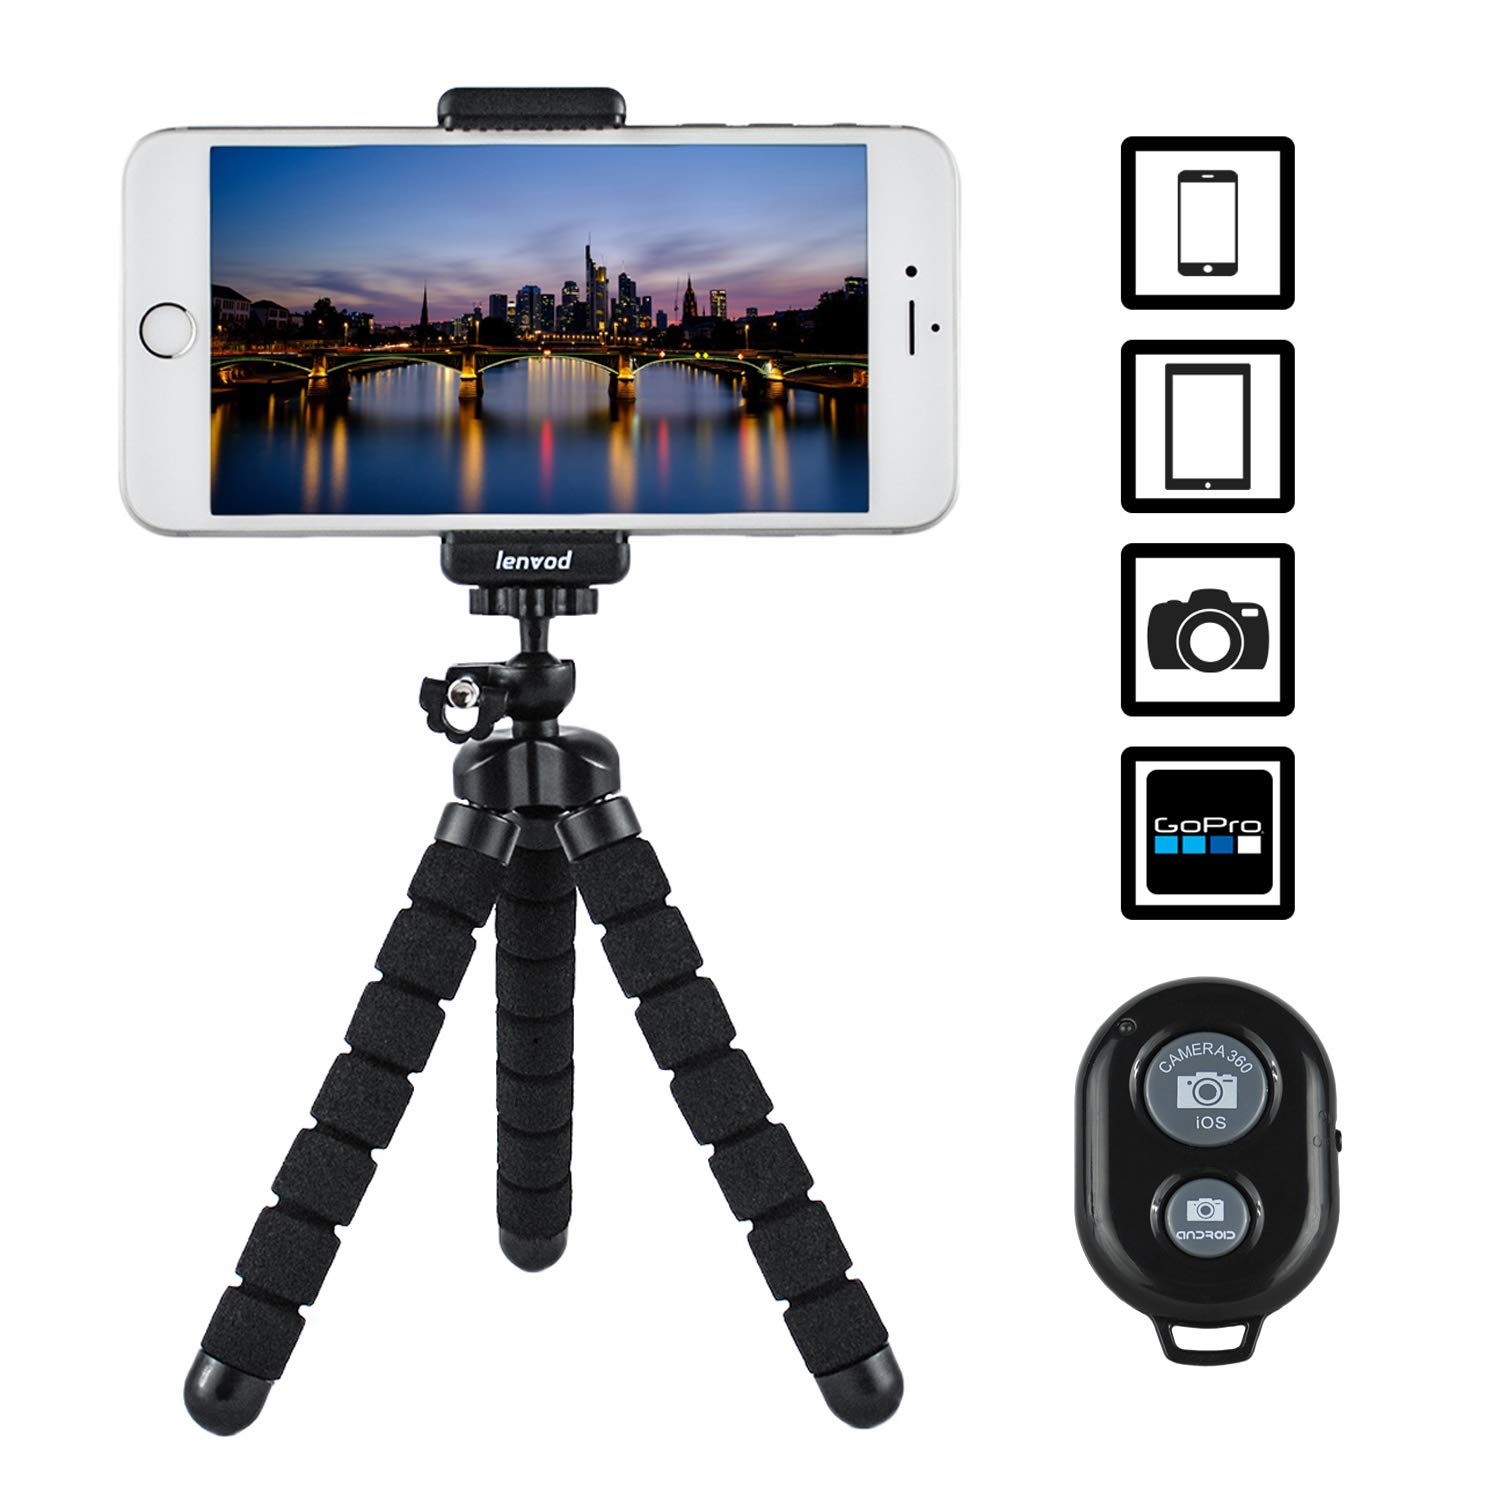 LENVOD – Cell Phone Tripod – Flexible iPhone Tripod for iPhone   Samsung   DSLR   GoPro – Portable Universal Camera Tripod Stand   Ball Head Octopus Tripod – with Remote Shutter Control iOS & Android